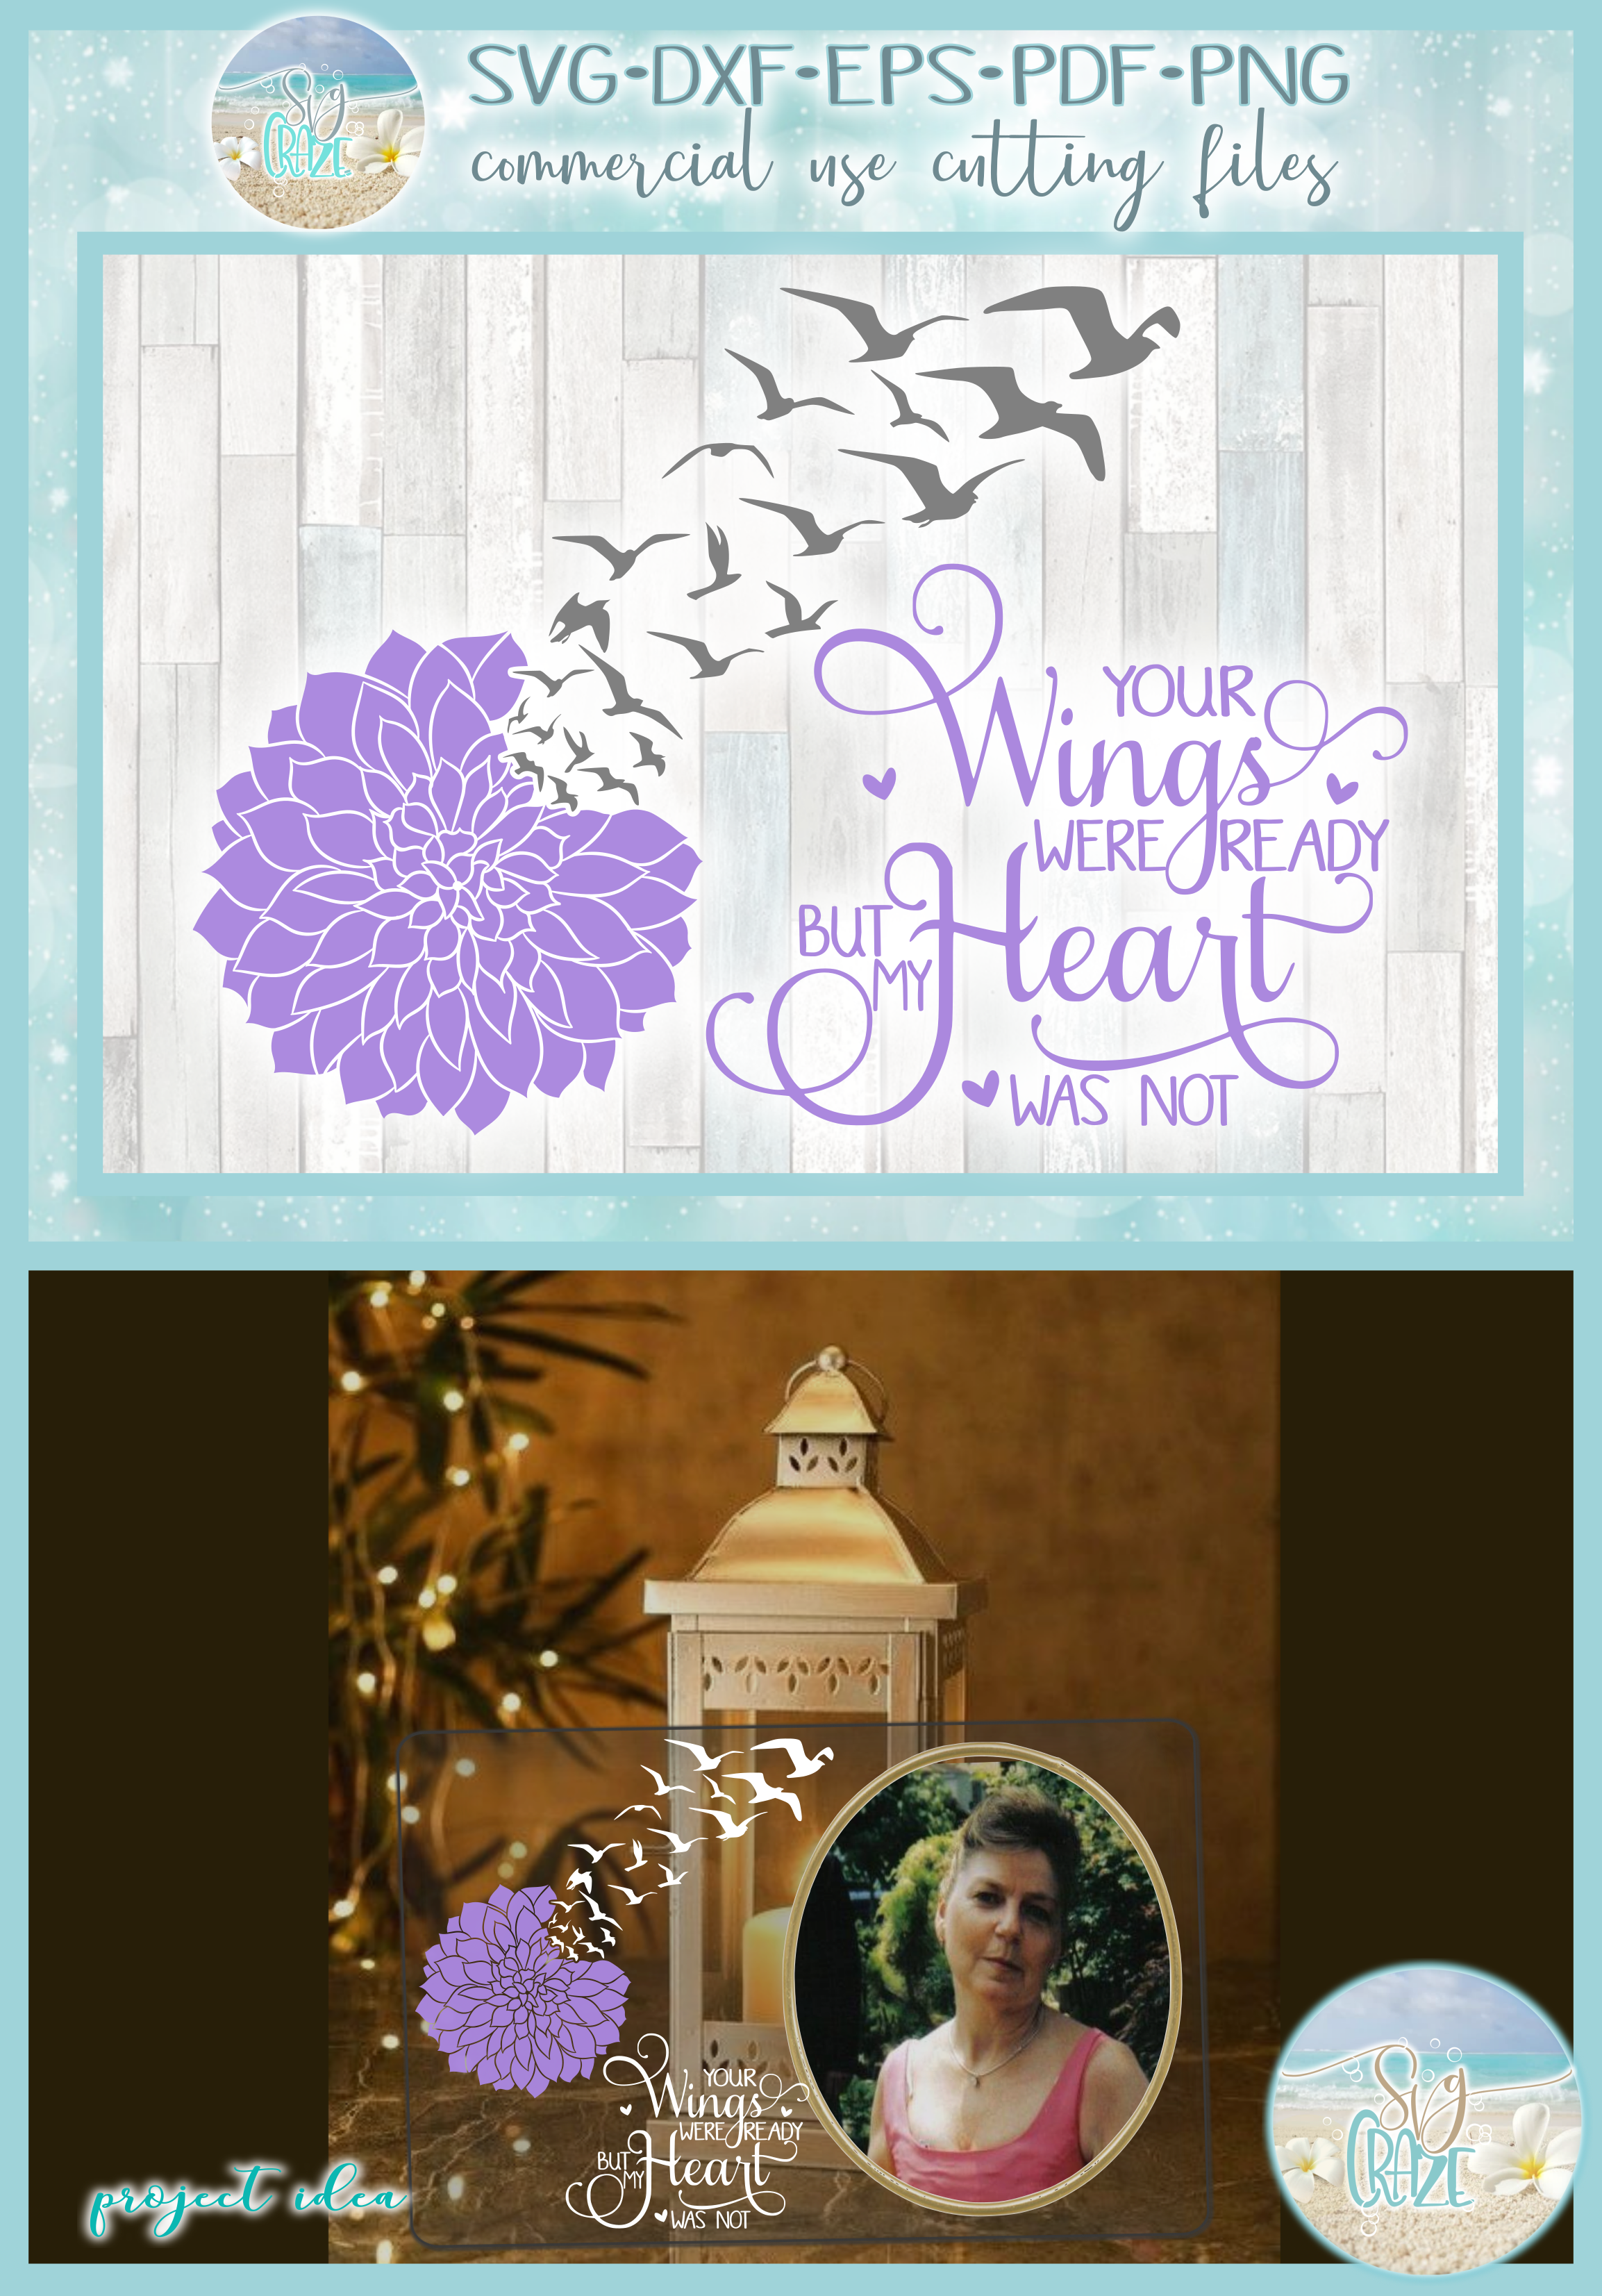 Your Wings Were Ready But My Heart Was Not with Dahlia SVG example image 4